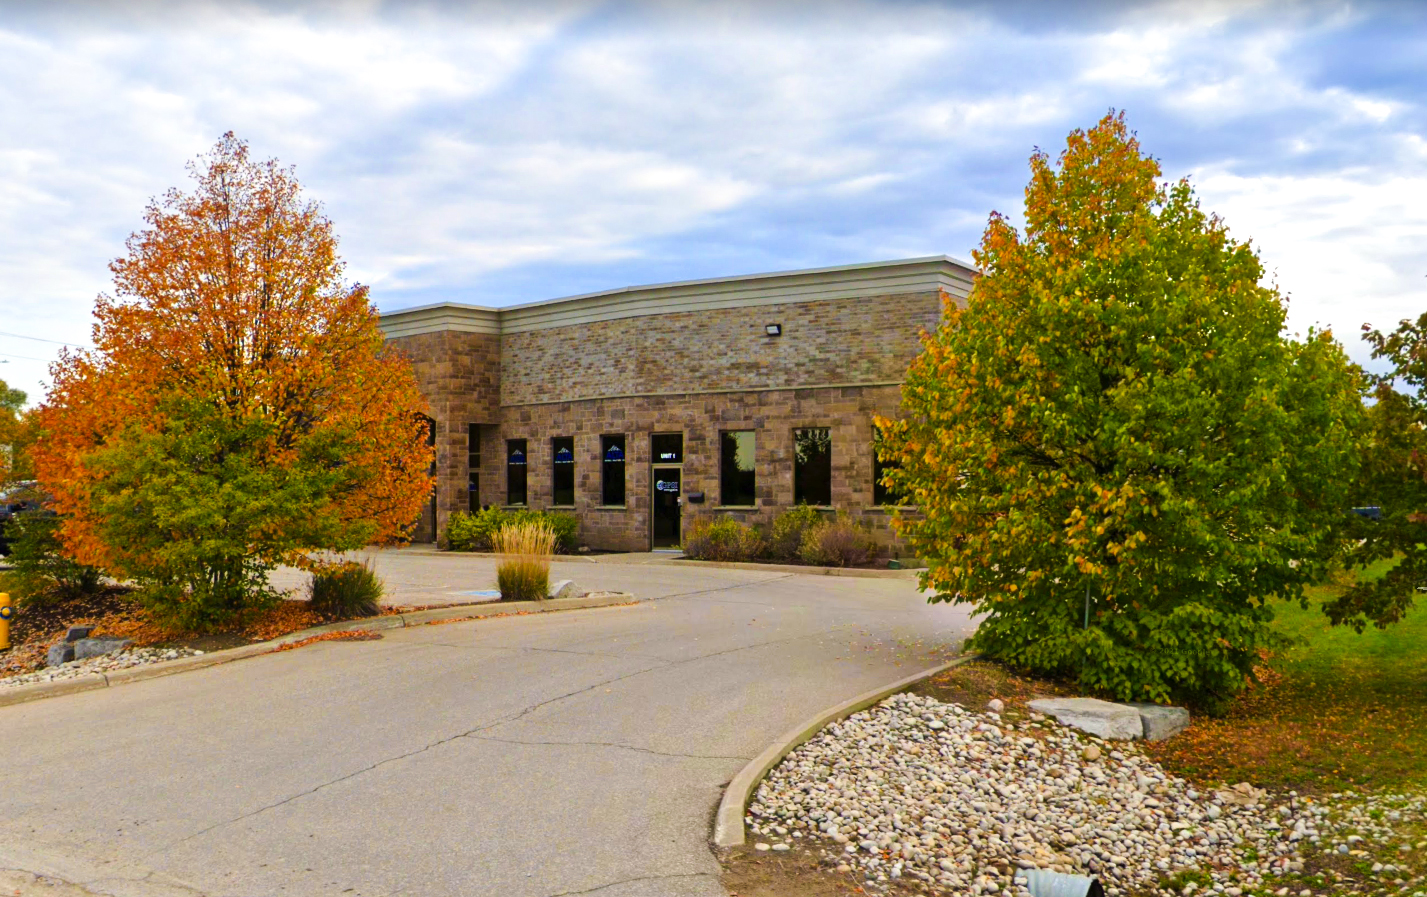 250 Thompson Drive, Cambridge, Unit 1 | Office/Industrial space for Lease